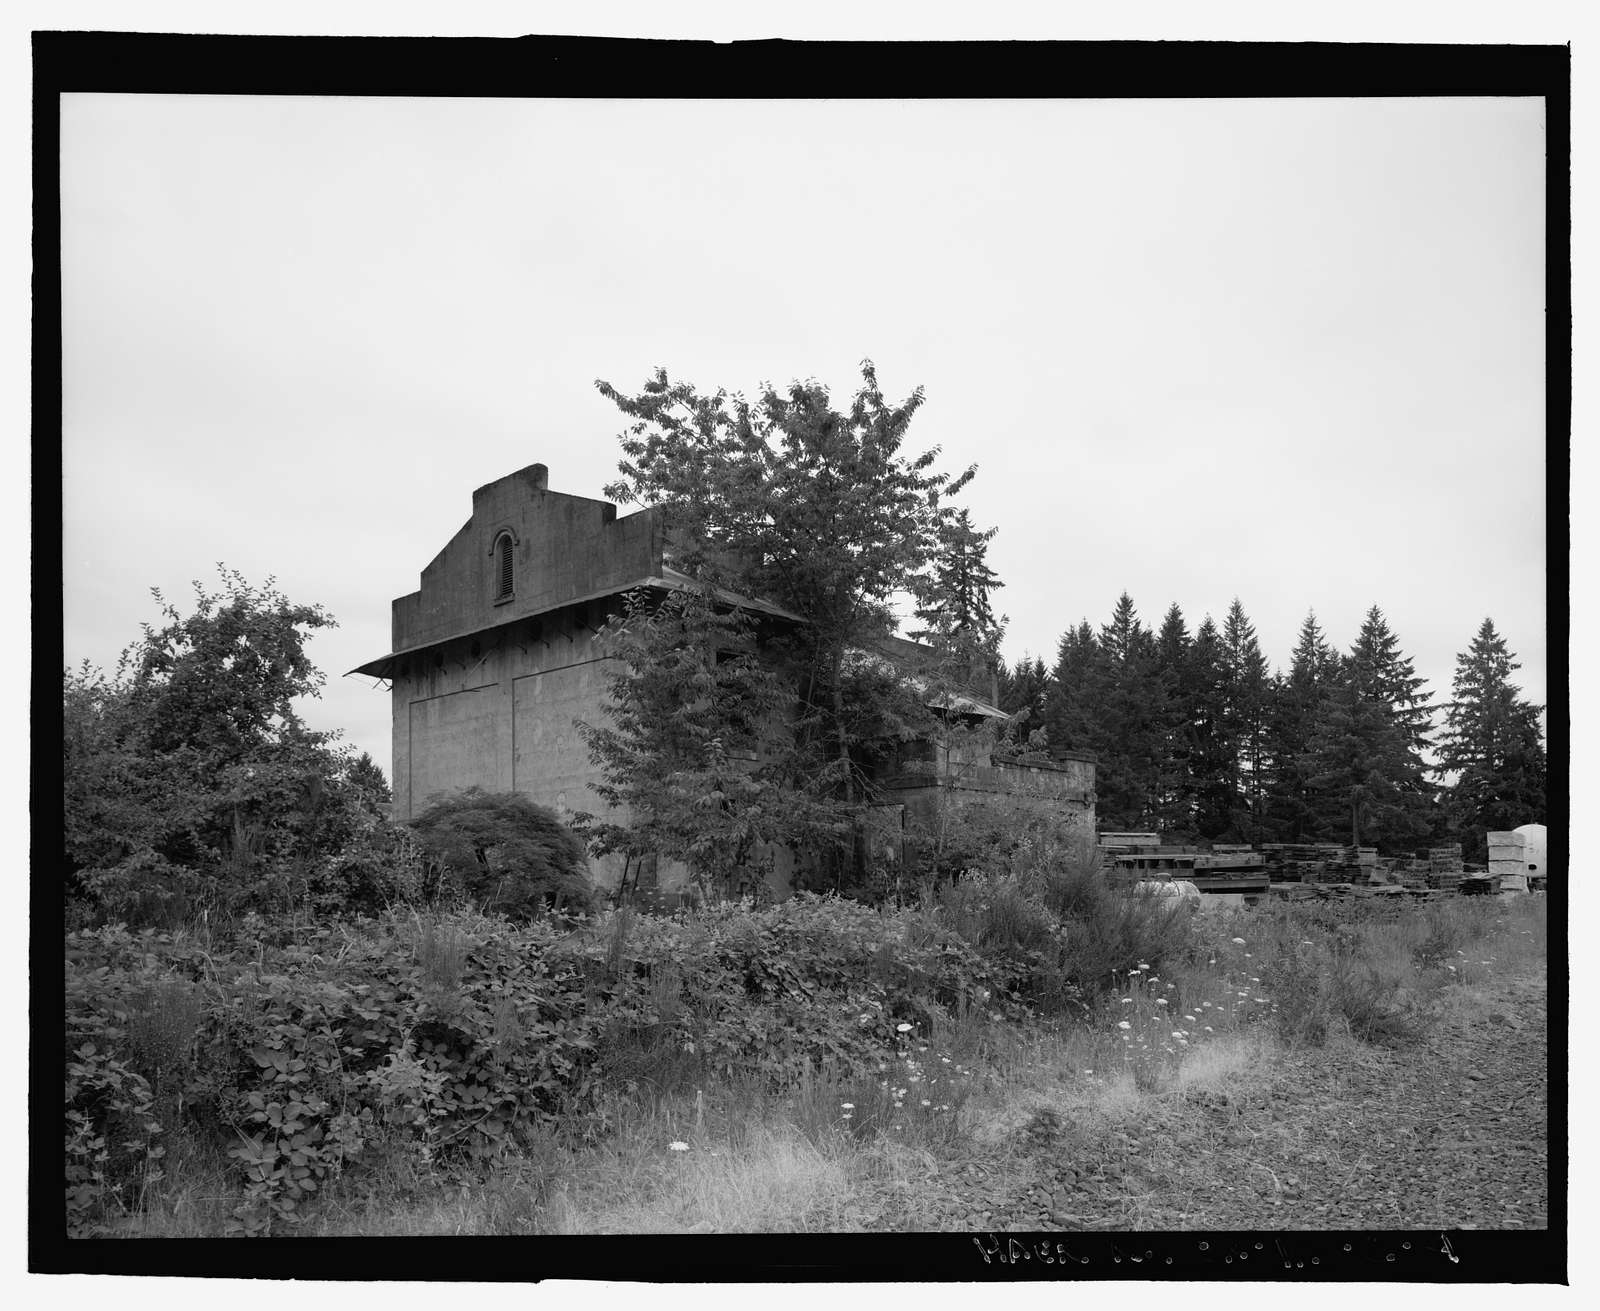 Oregon Electric Railroad, Tonquin Substation, Garden Home to Wilsonville Segment, Milepost 39.1, Wilsonville, Clackamas County, OR